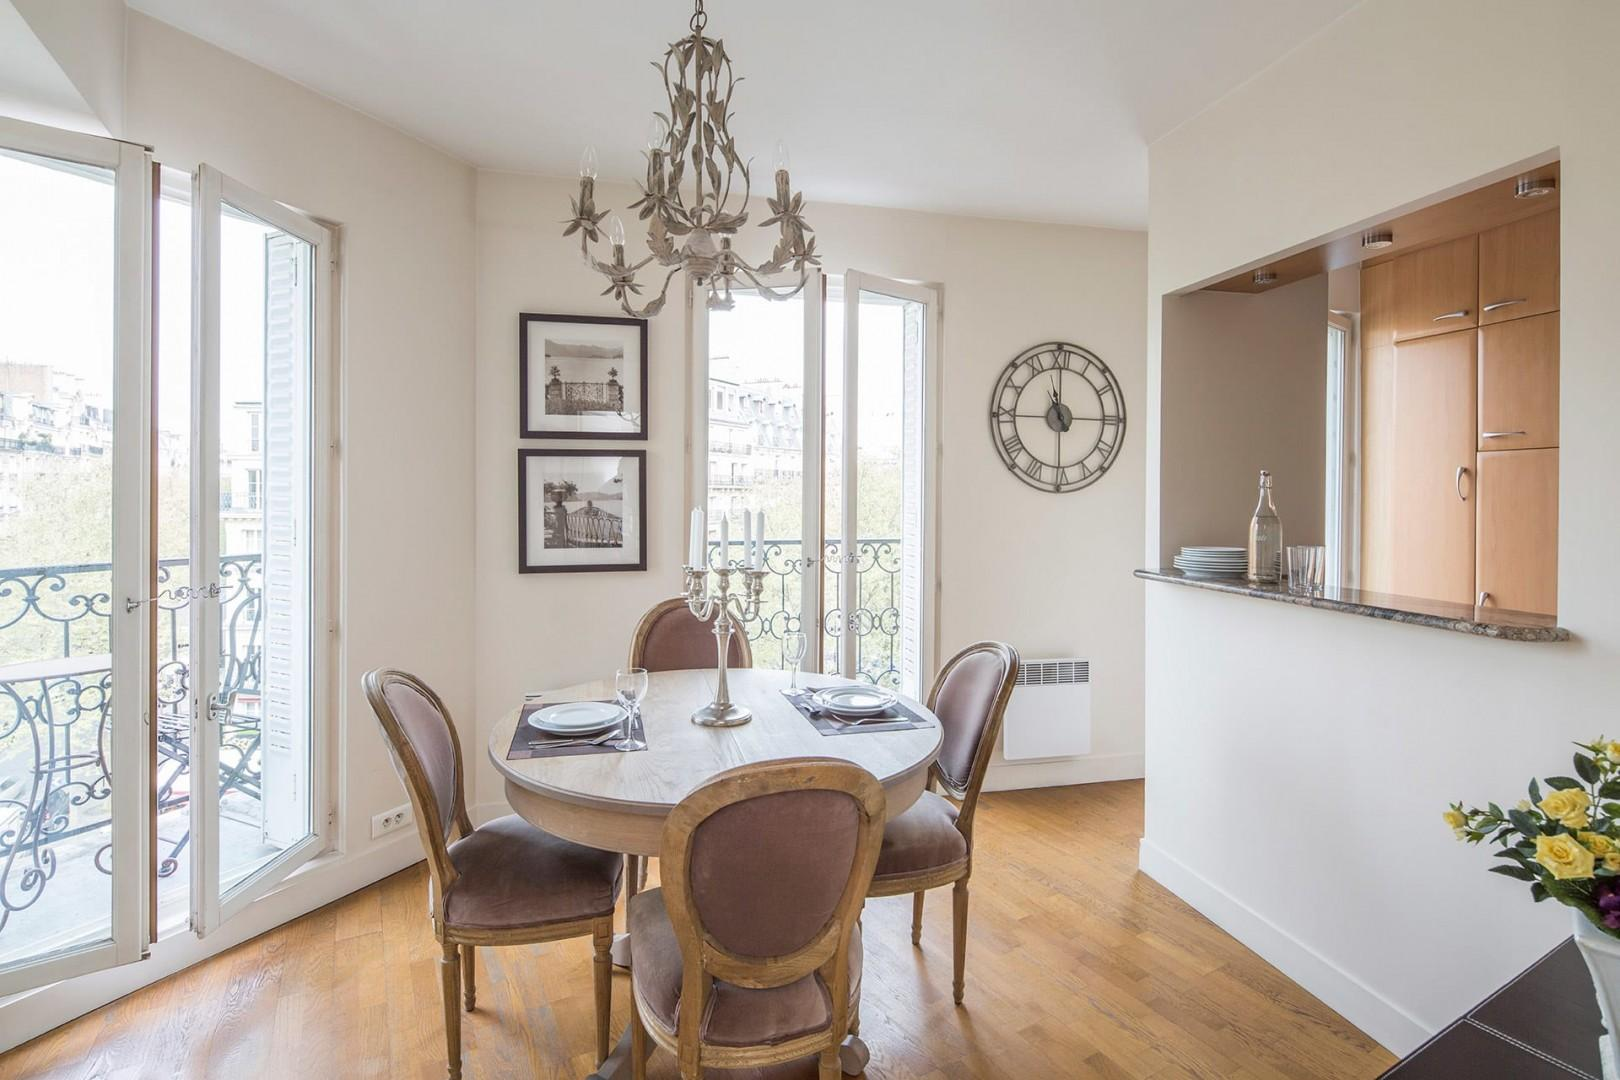 The dining area has the ideal romantic atmosphere for enjoying French cuisine at home.